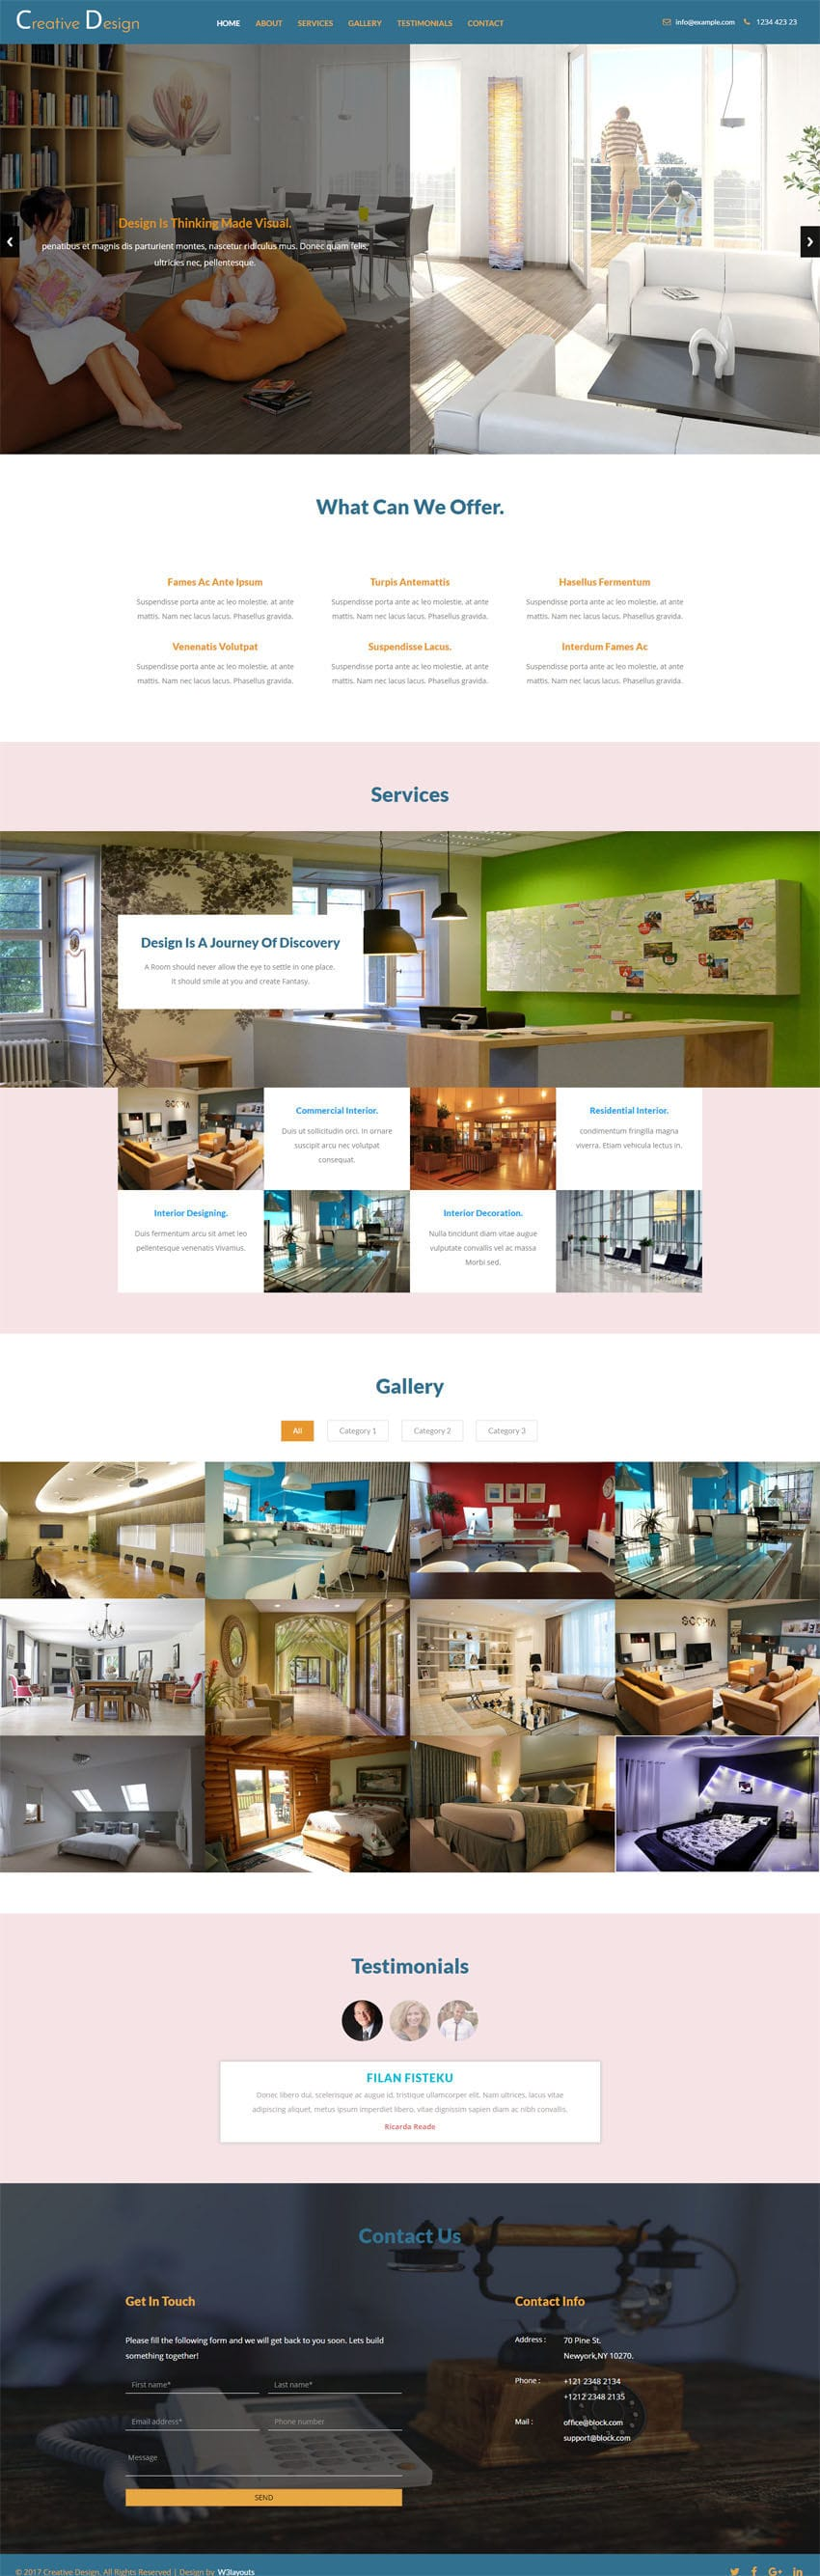 Creative design an interior category bootstrap responsive for Interior design responsive website templates edge free download